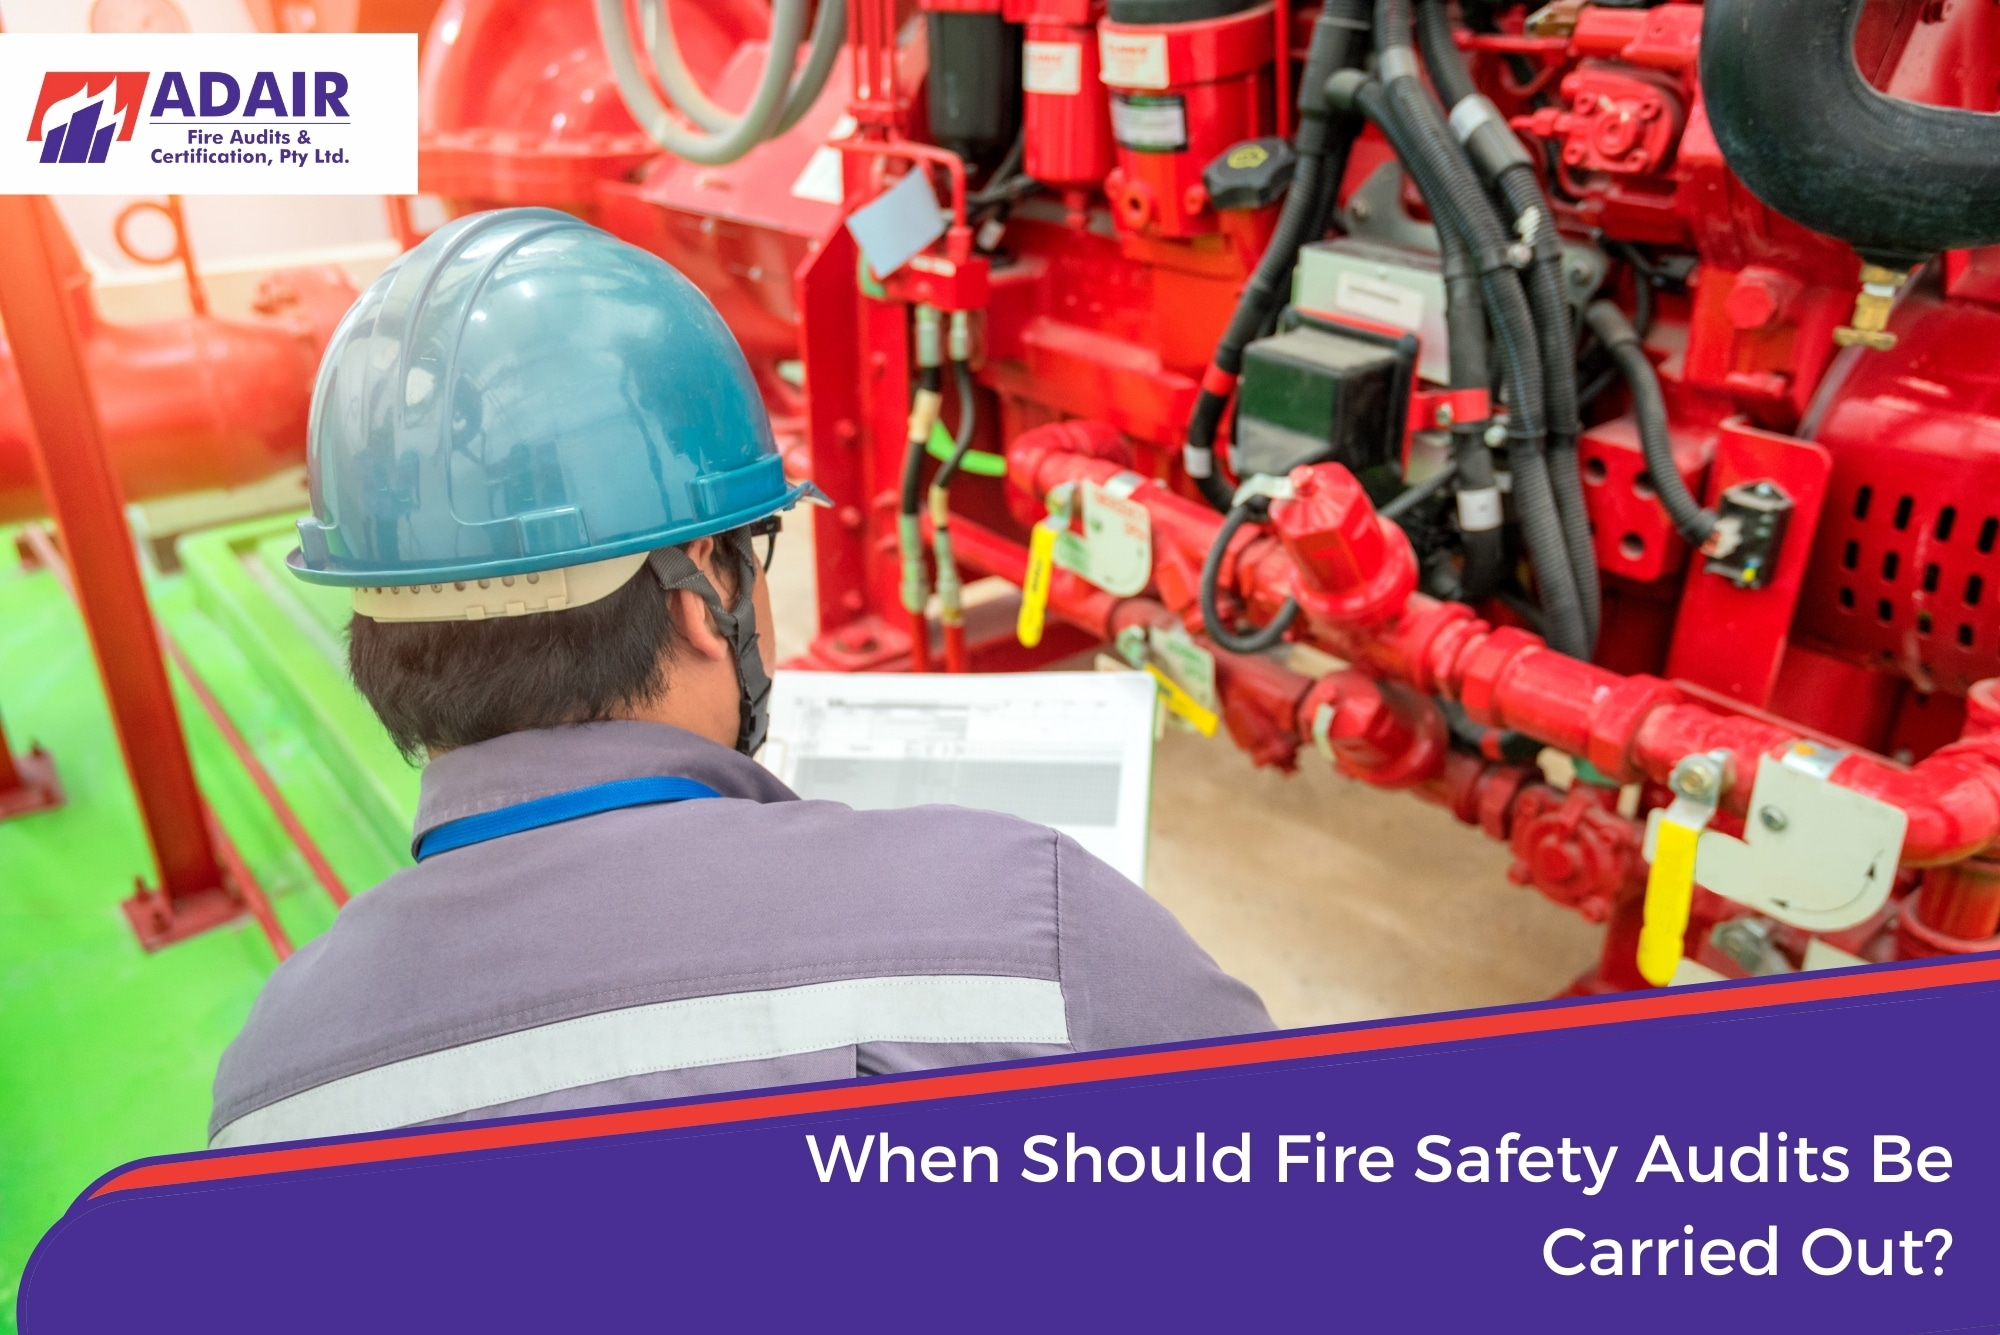 When Should Fire Safety Audits Be Carried Out